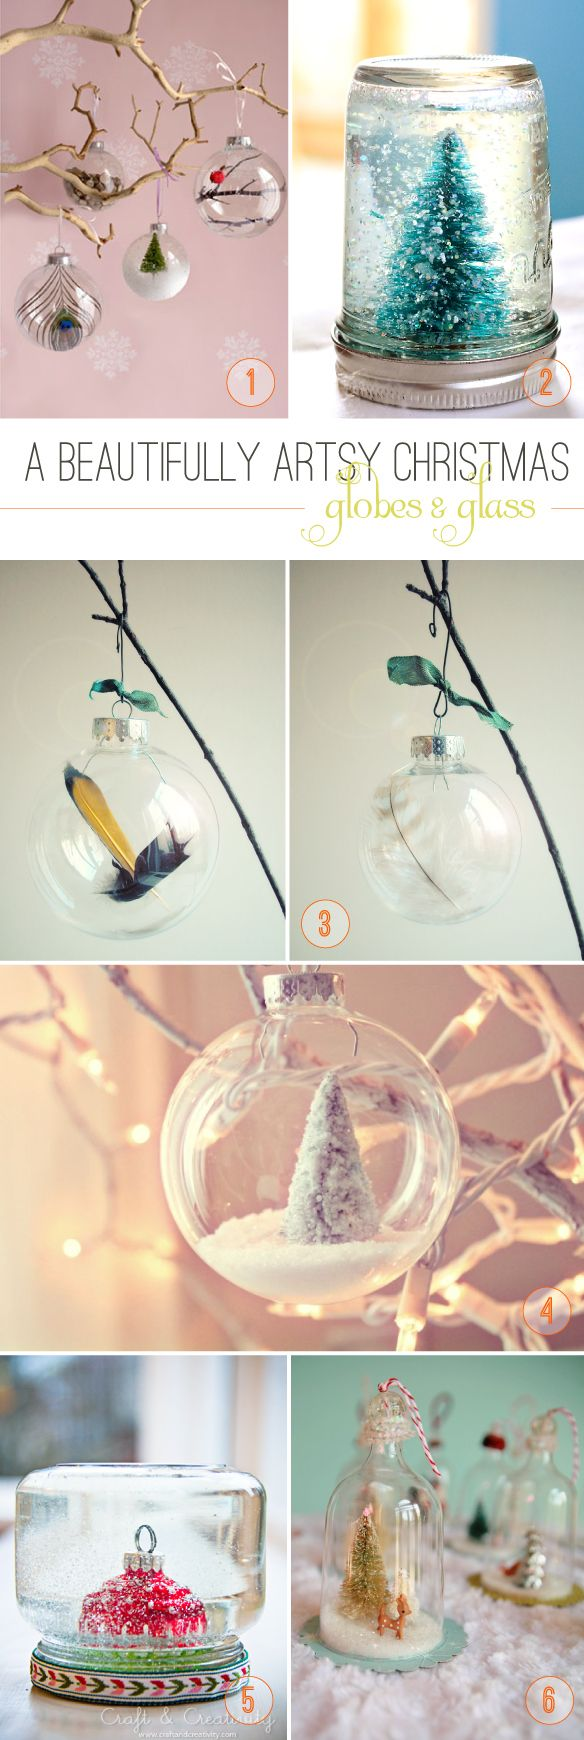 DIY Christmas Snow Globes and Glass Ornaments  from Beautiful Hello Blog